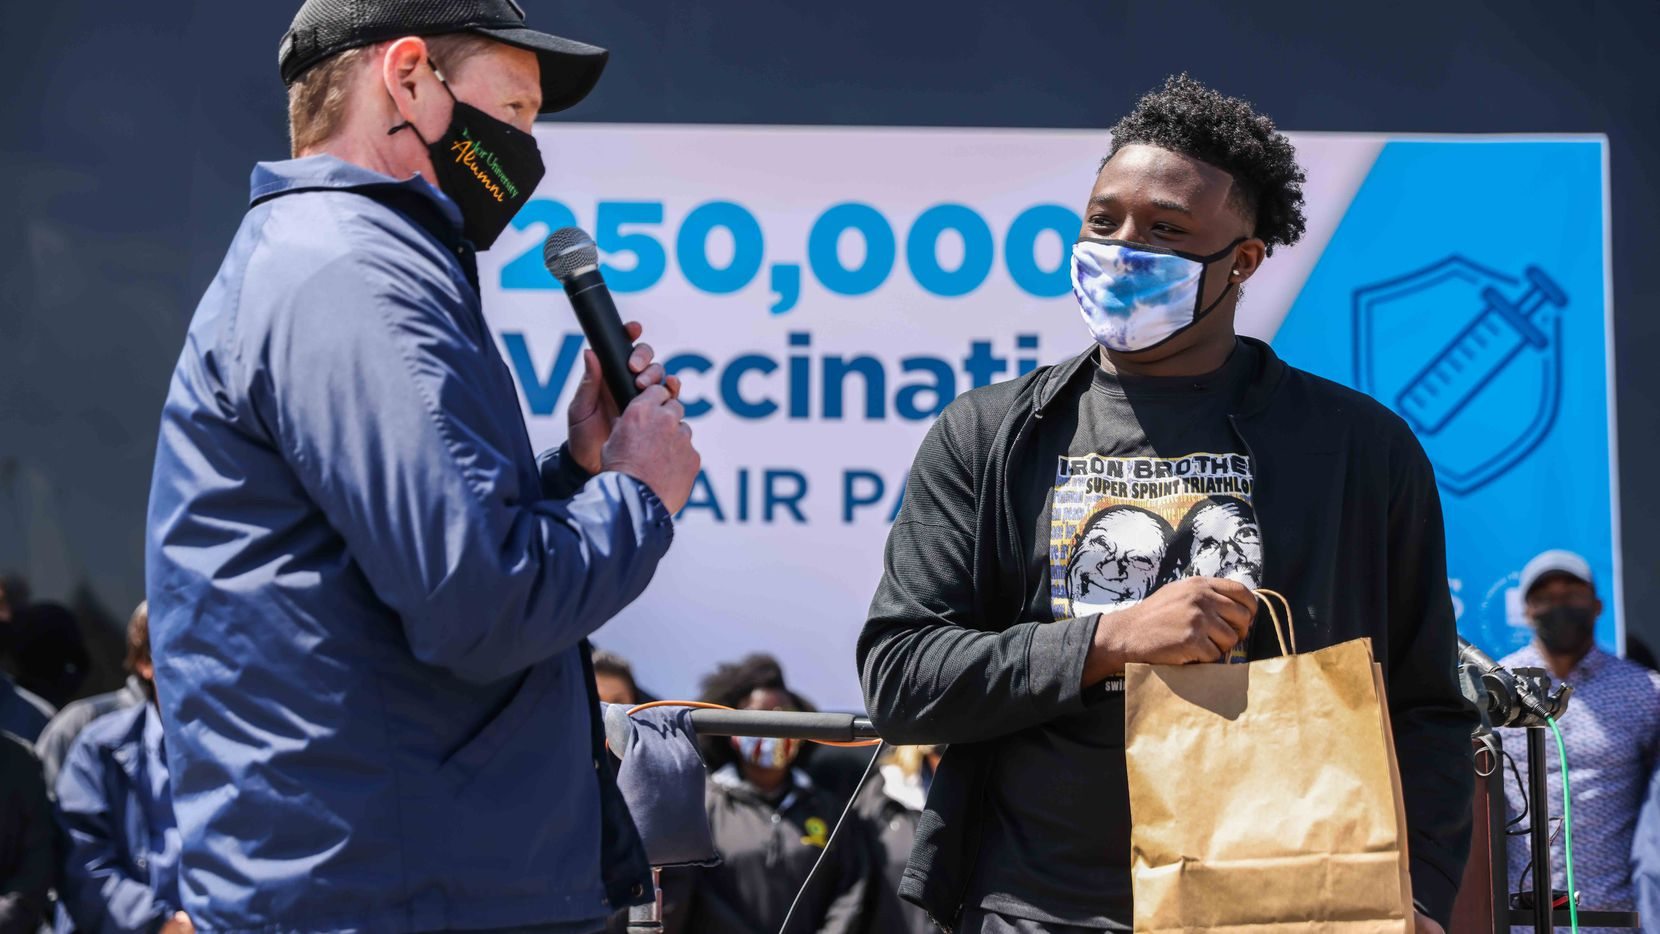 Dallas County Judge Clay Jenkins gave Quincy Williams, 20, who received the 250,000th vaccine provided by Dallas County, a certificate of the vaccination at Fair Park on March 31, 2021.